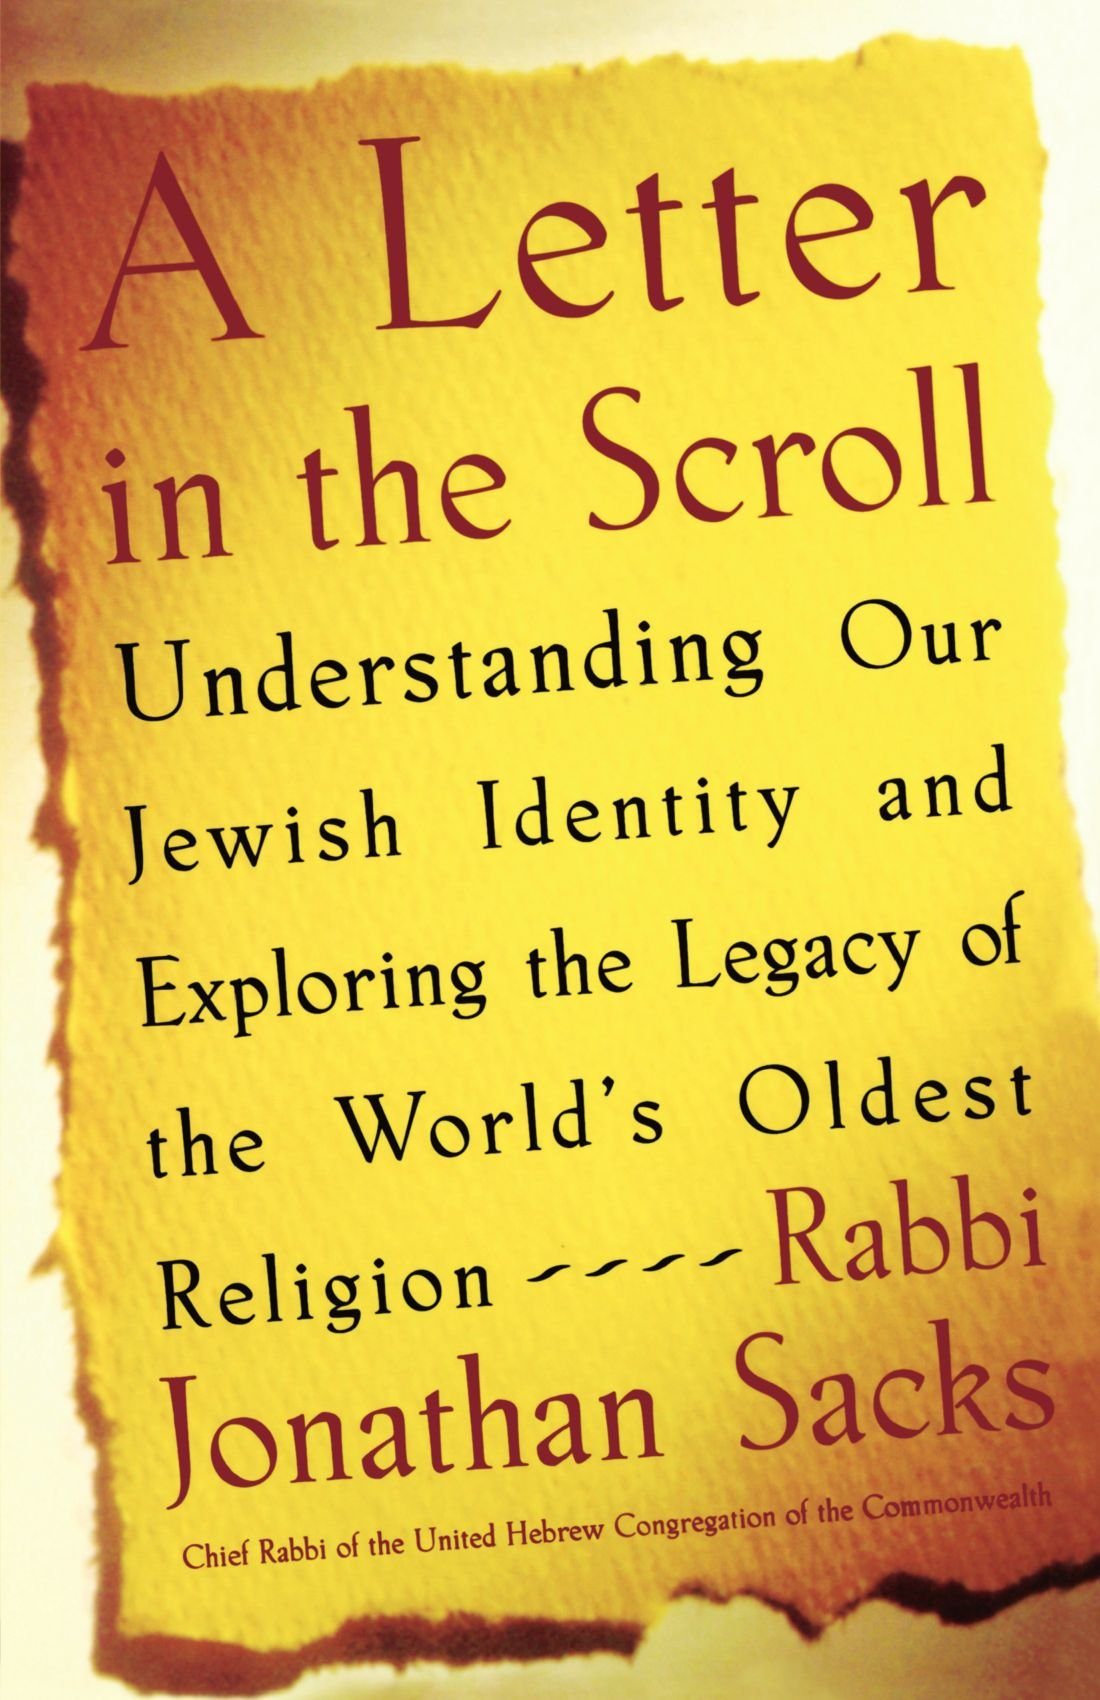 A Letter in the Scroll: Understanding Our Jewish Identity and Exploring the Legacy of the World's Oldest Religion pdf